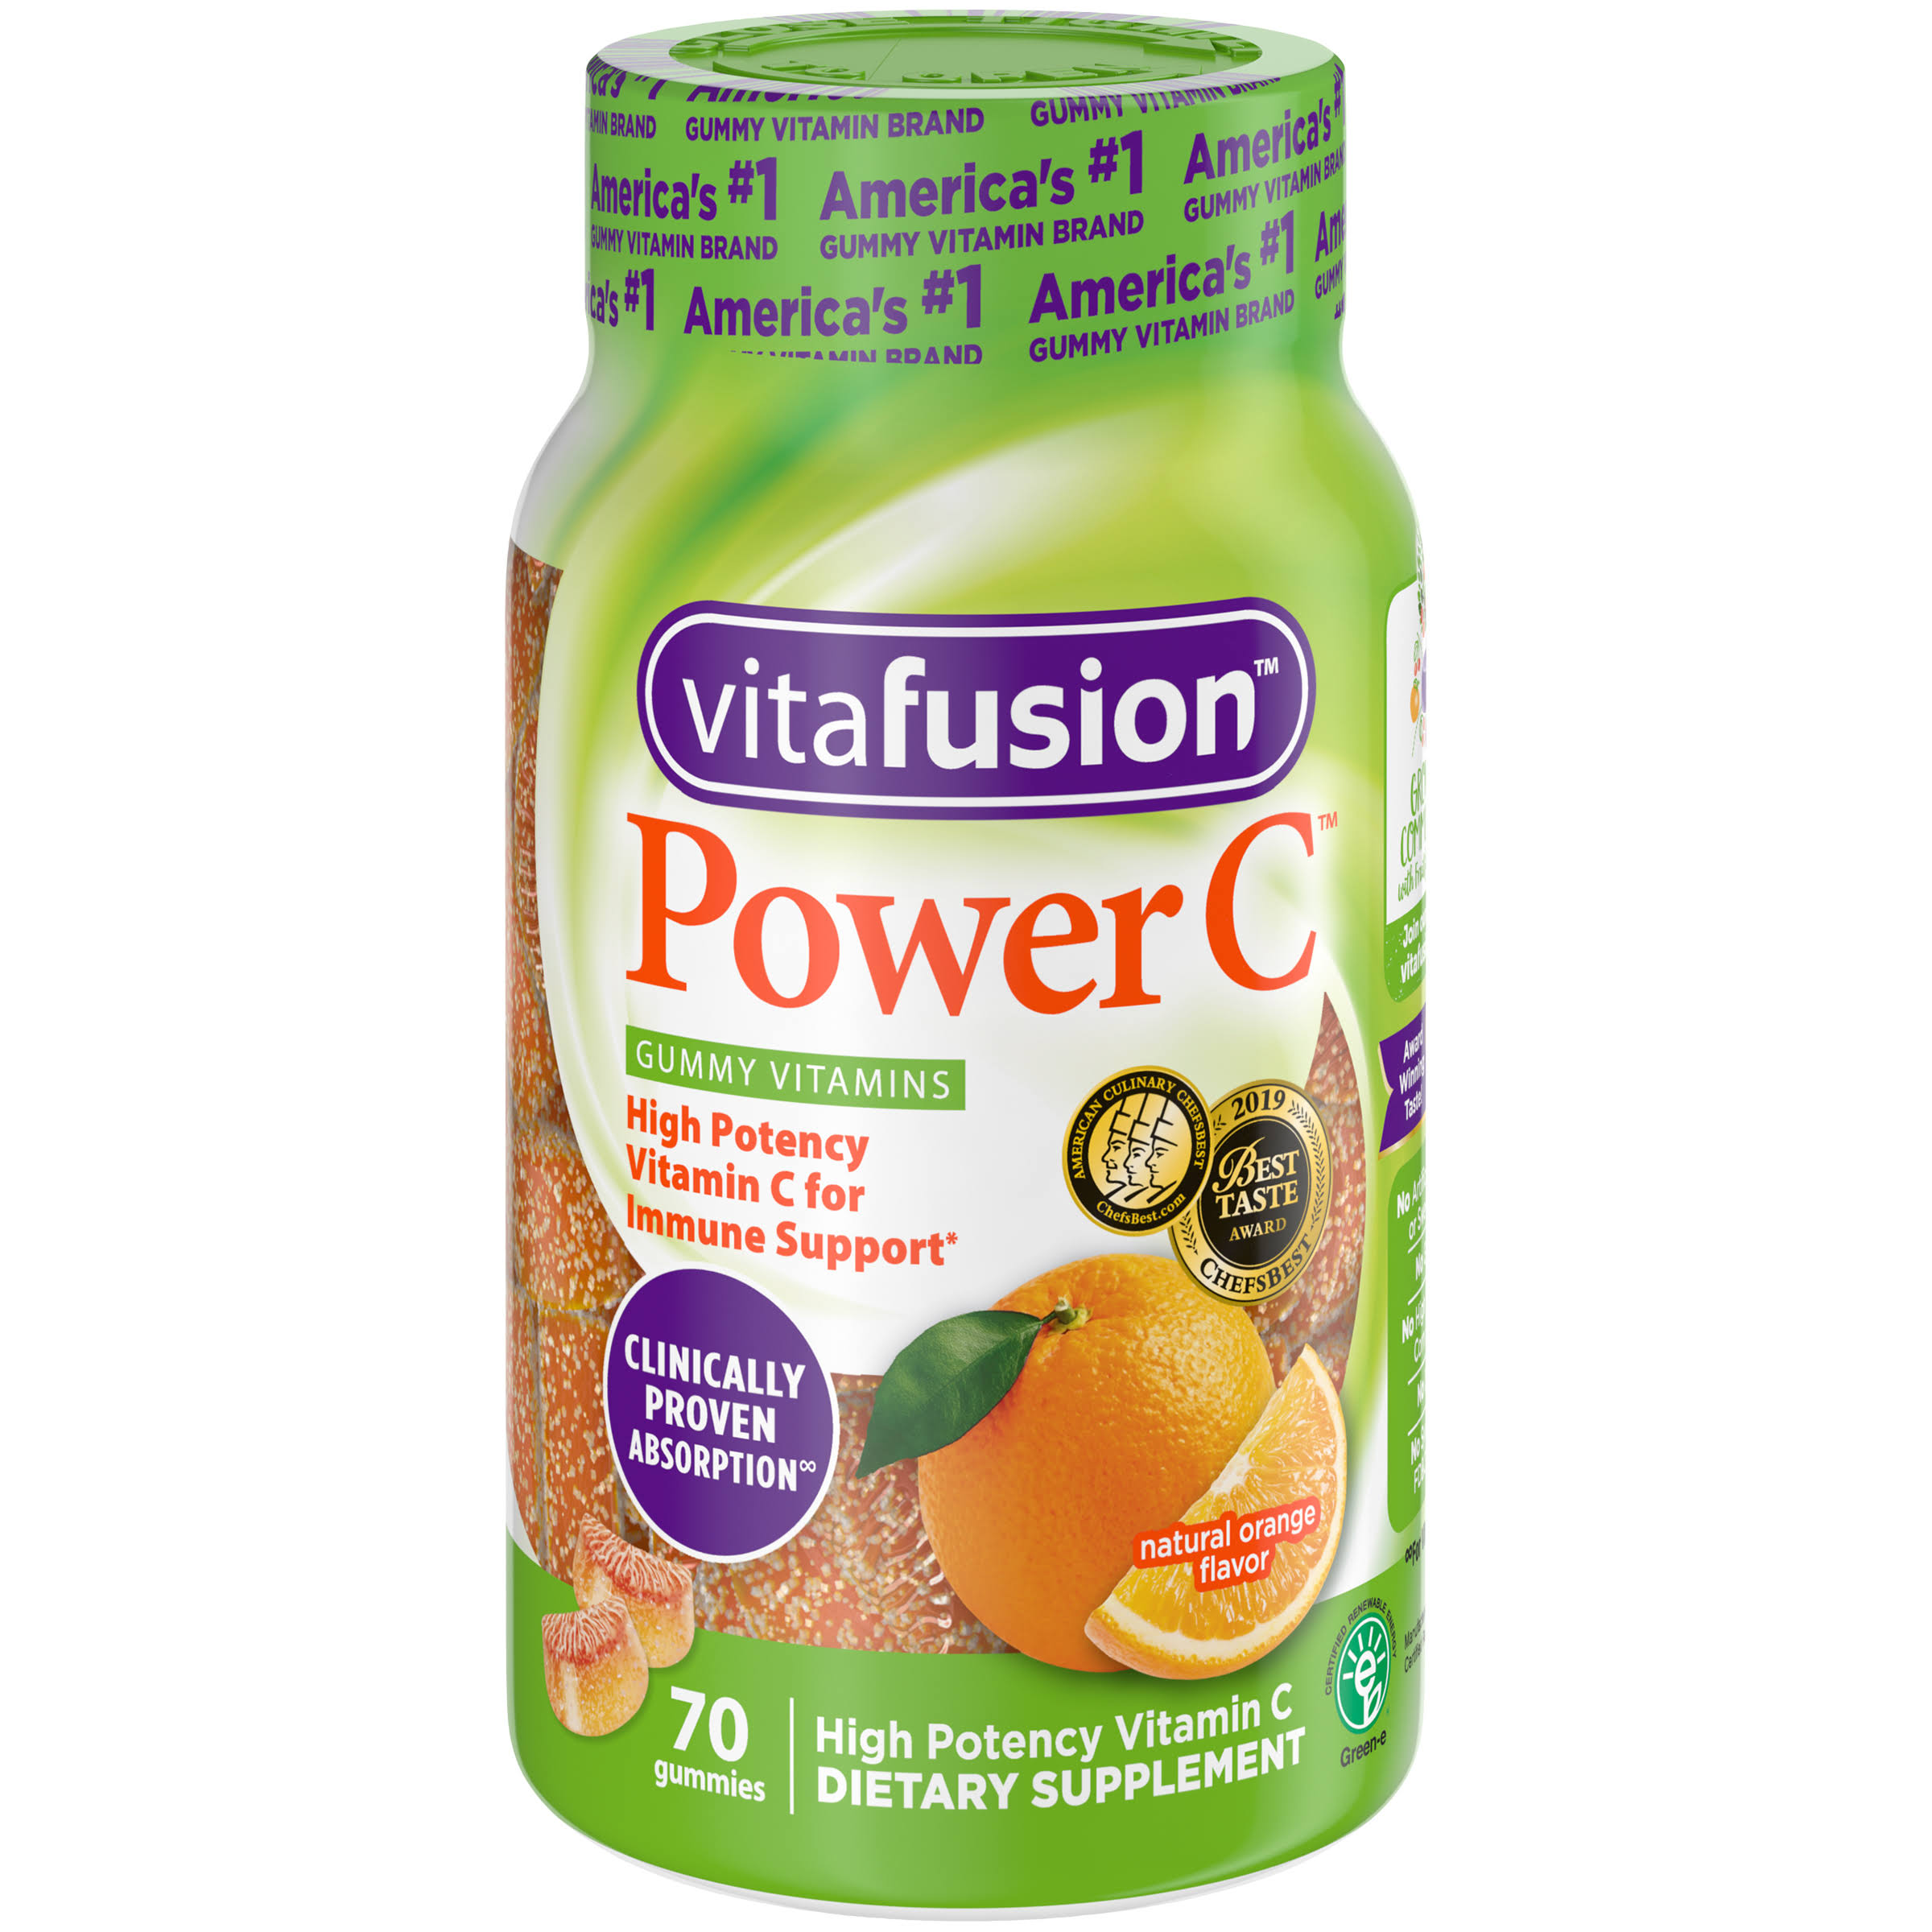 Vitafusion Power C Gummy Vitamins